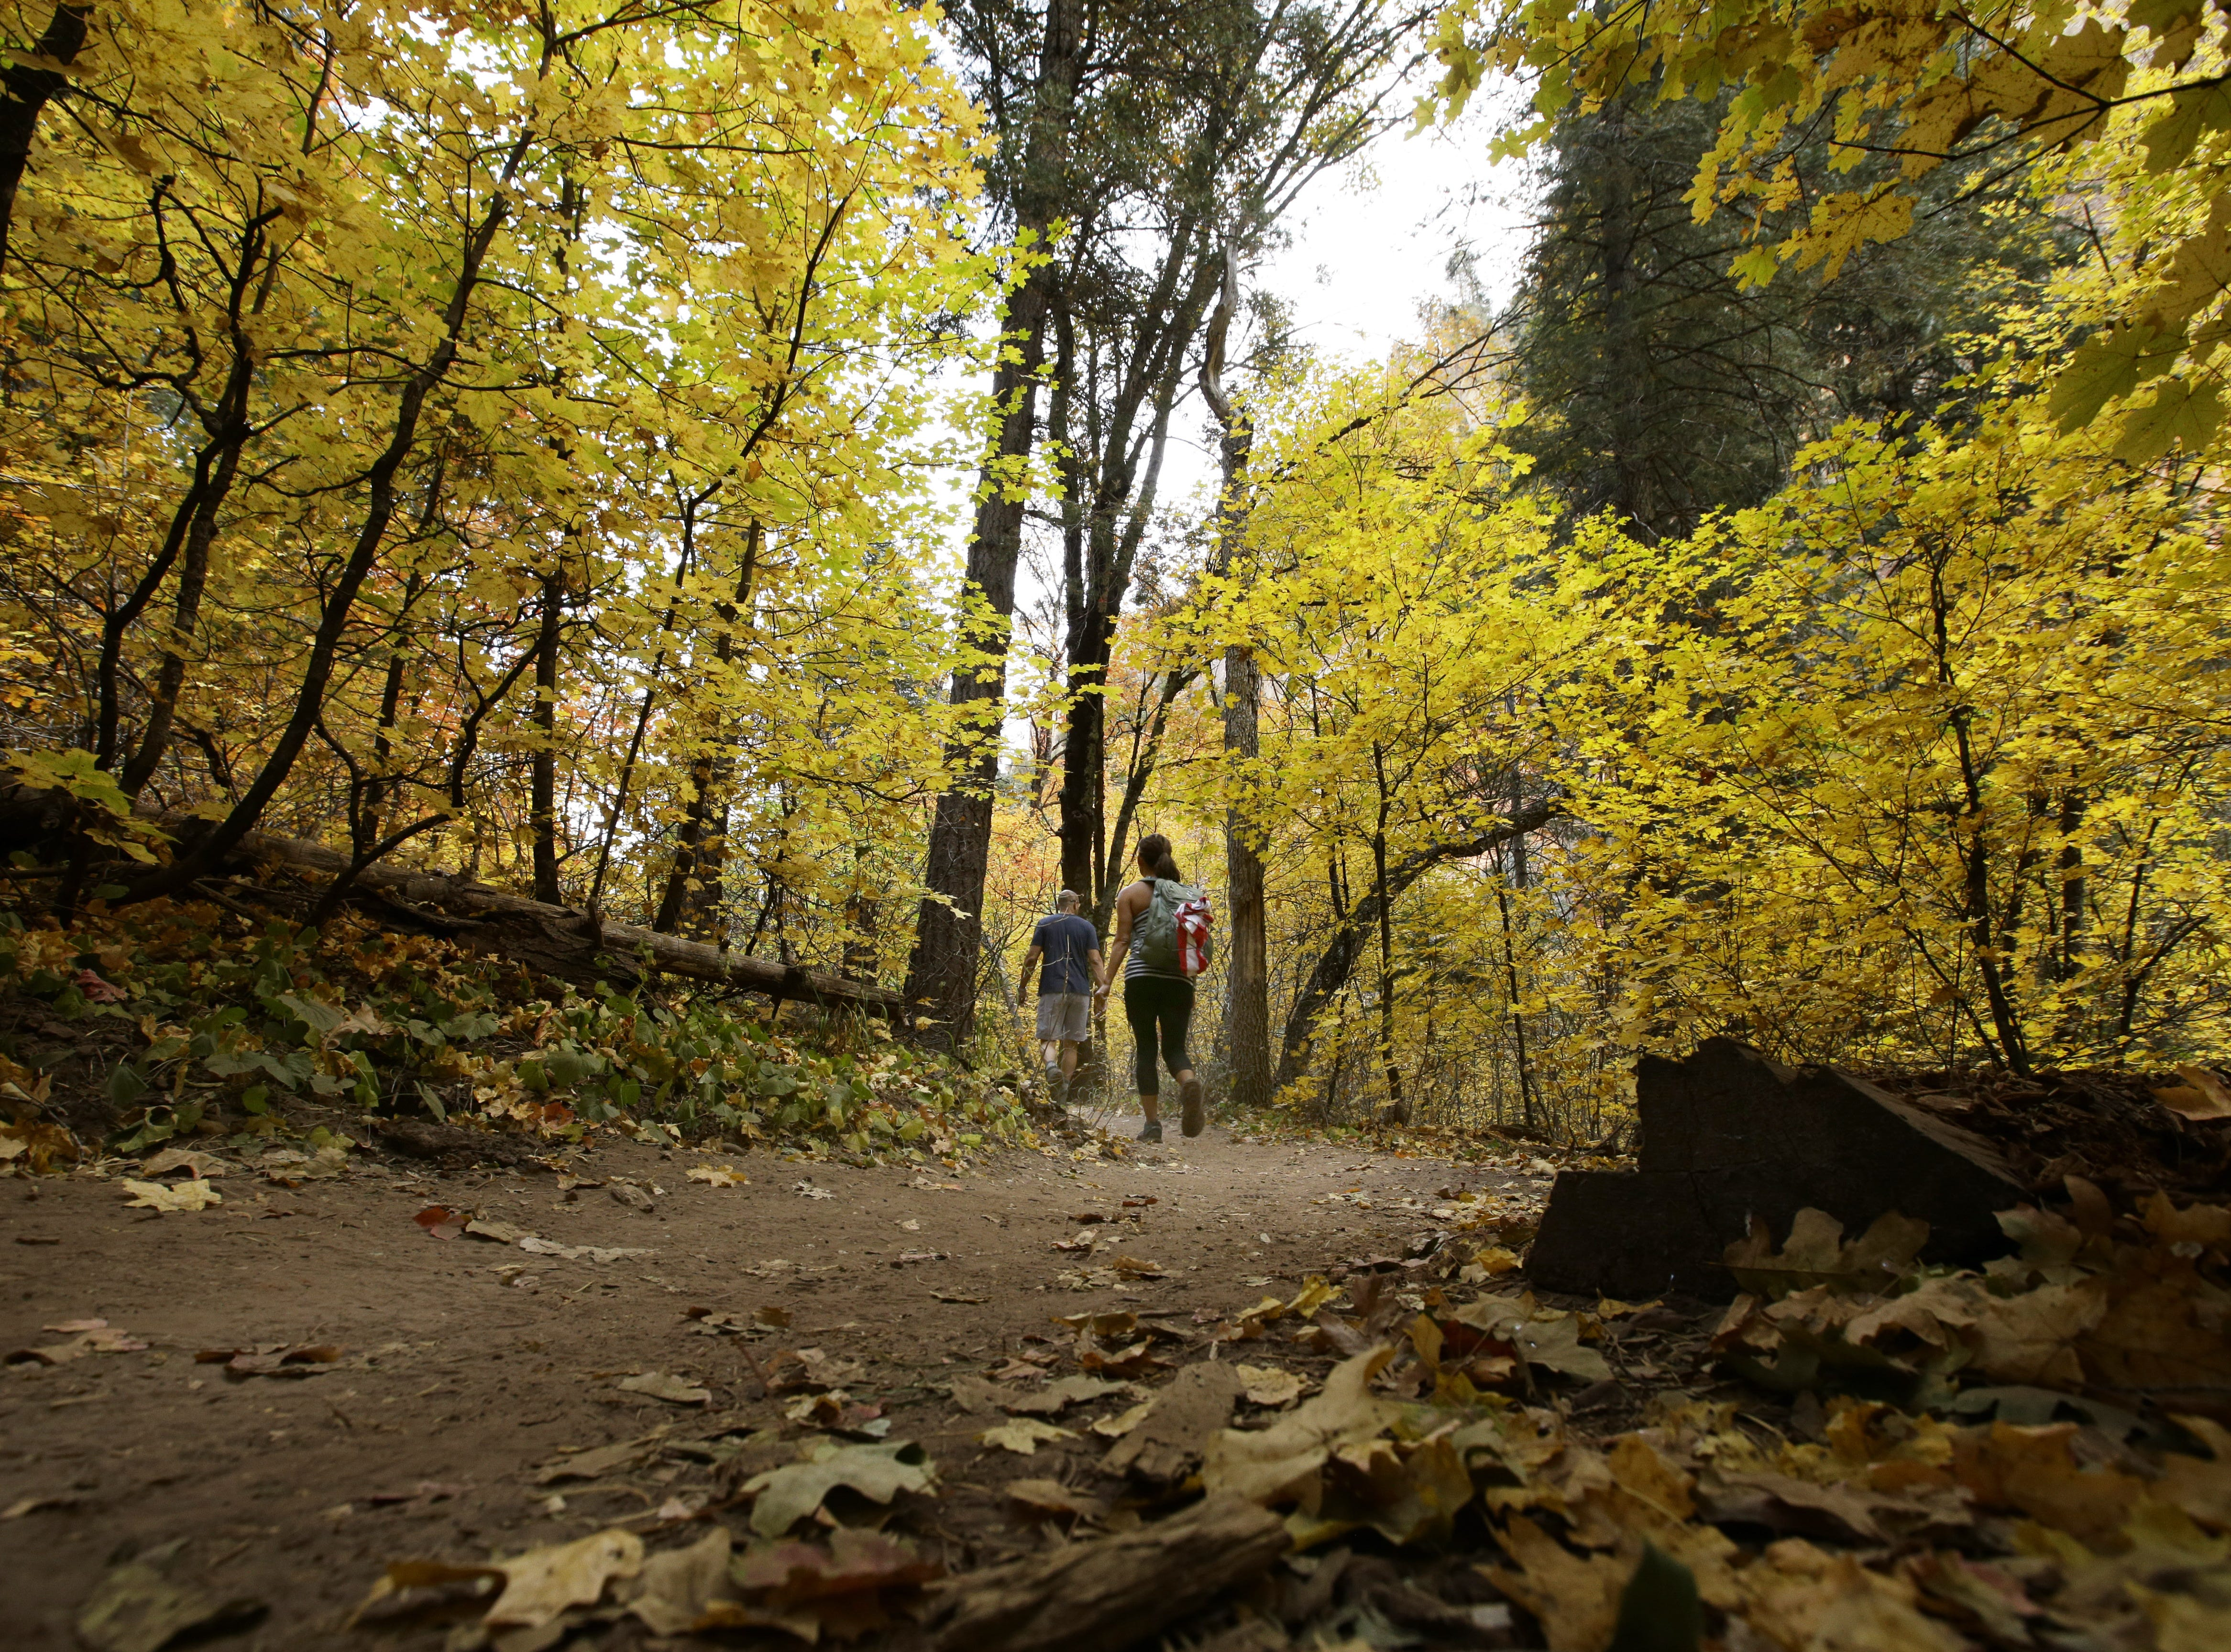 Fall colors descend on the West Fork Trail at Oak Creek Canyon on Oct. 17, 2017 north of Sedona, Ariz.